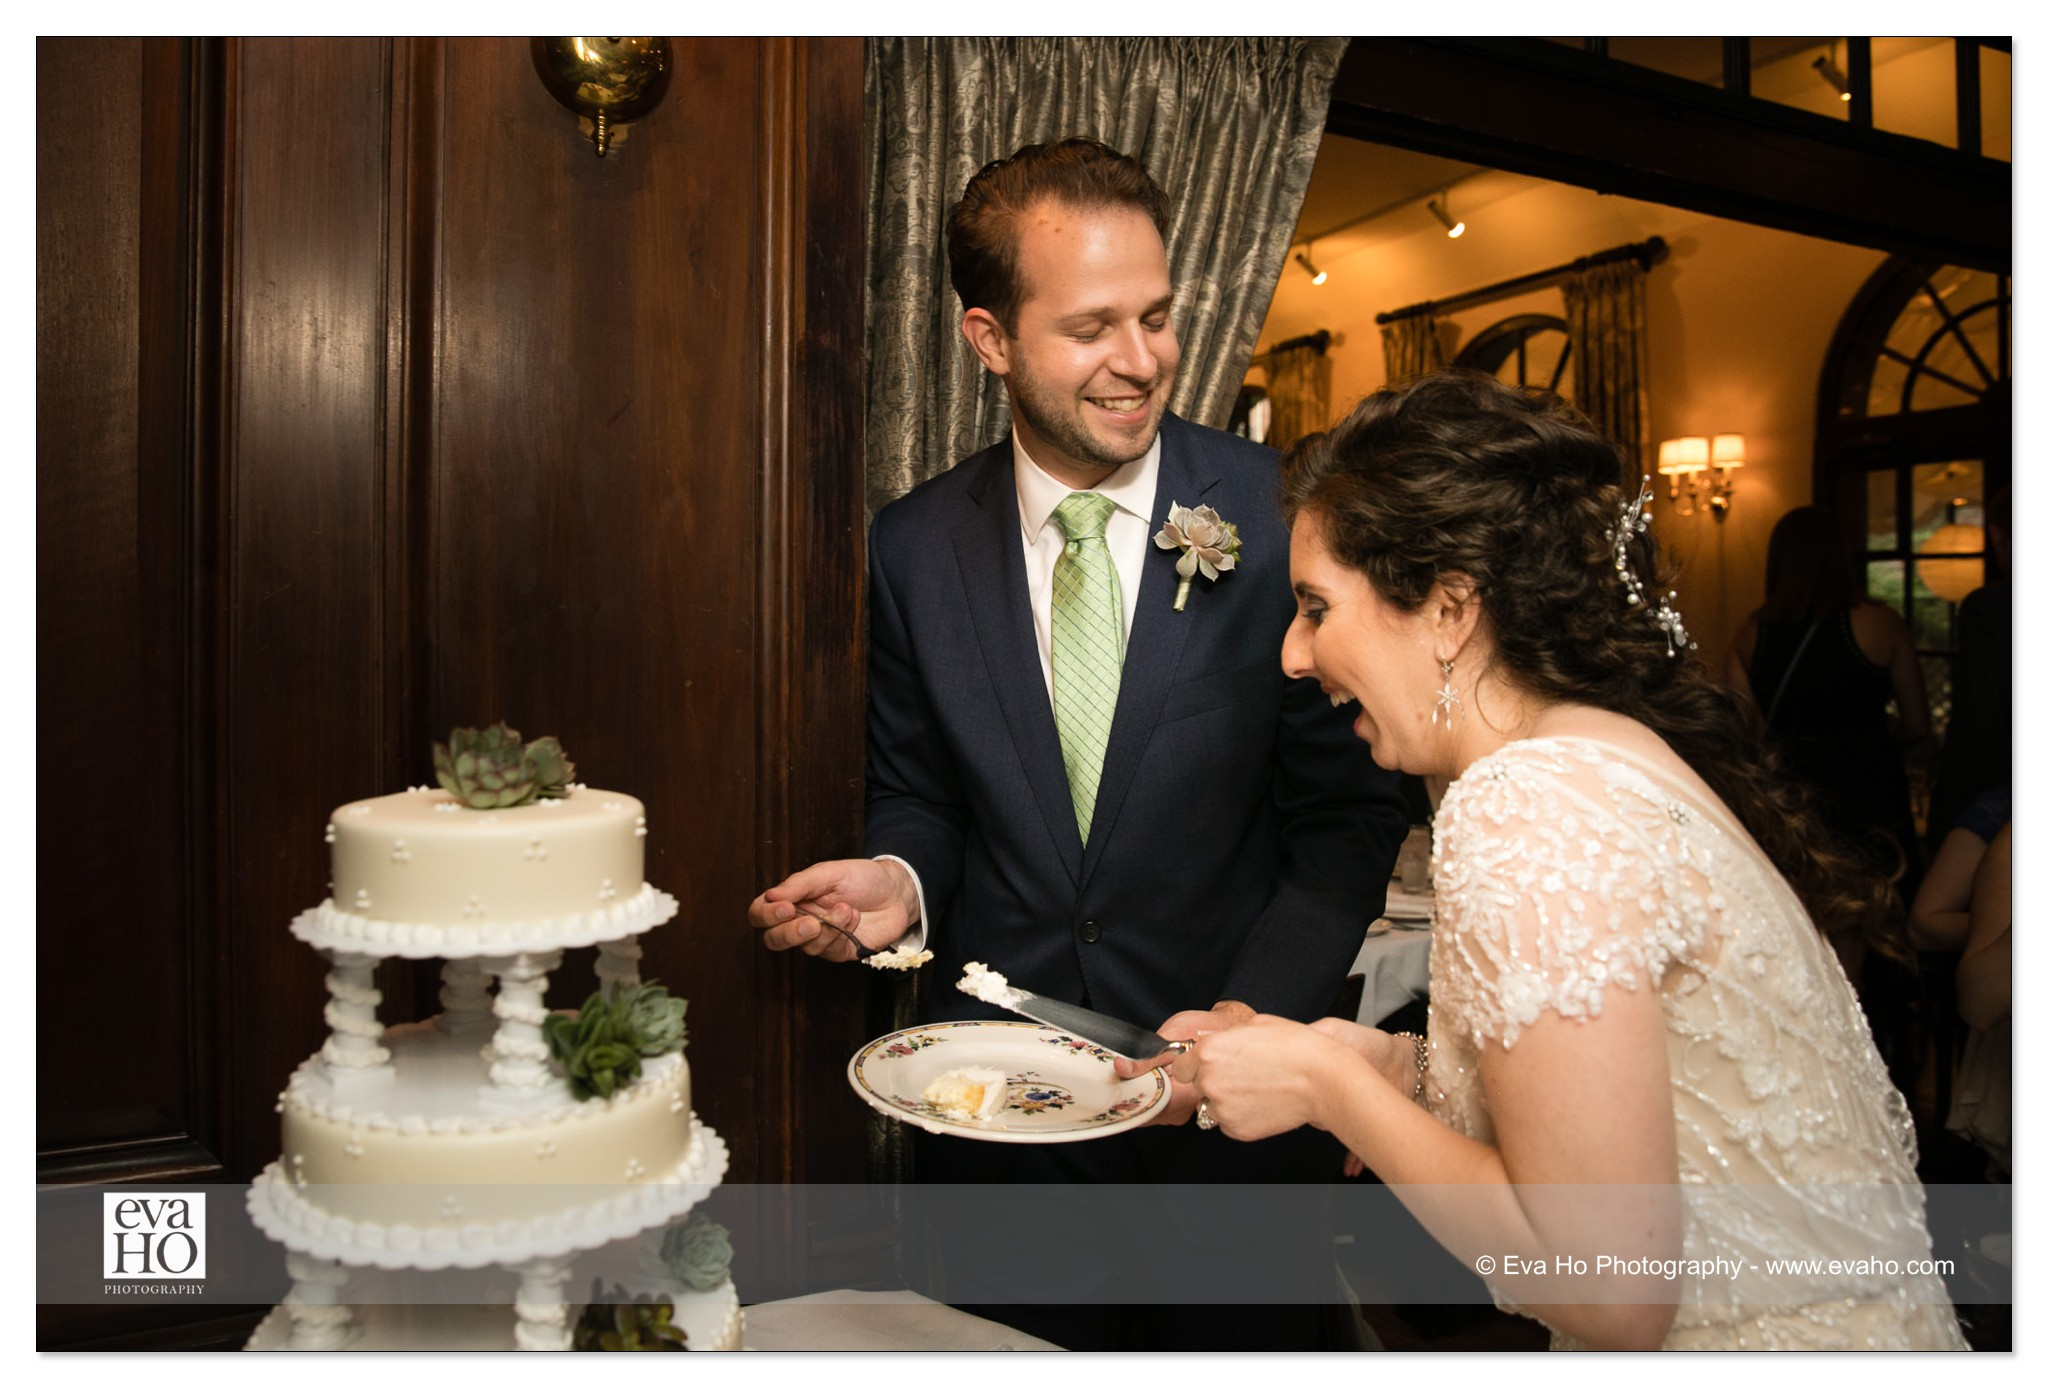 Cake Cutting Photography